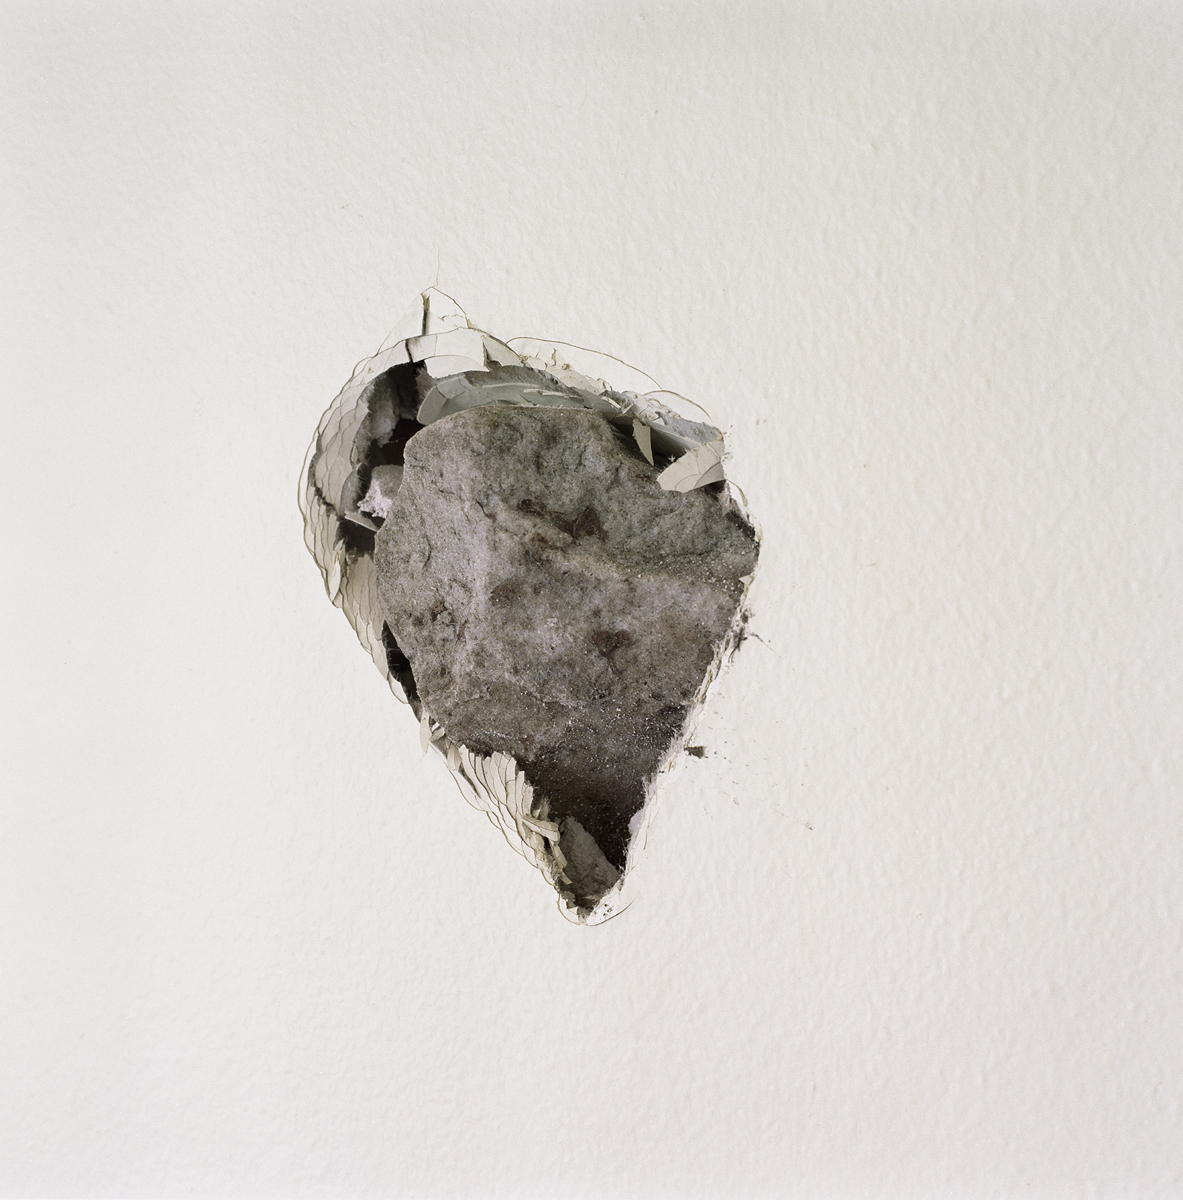 17. Untitled (Hole and Rock). 2005. Archival Pigment Print.